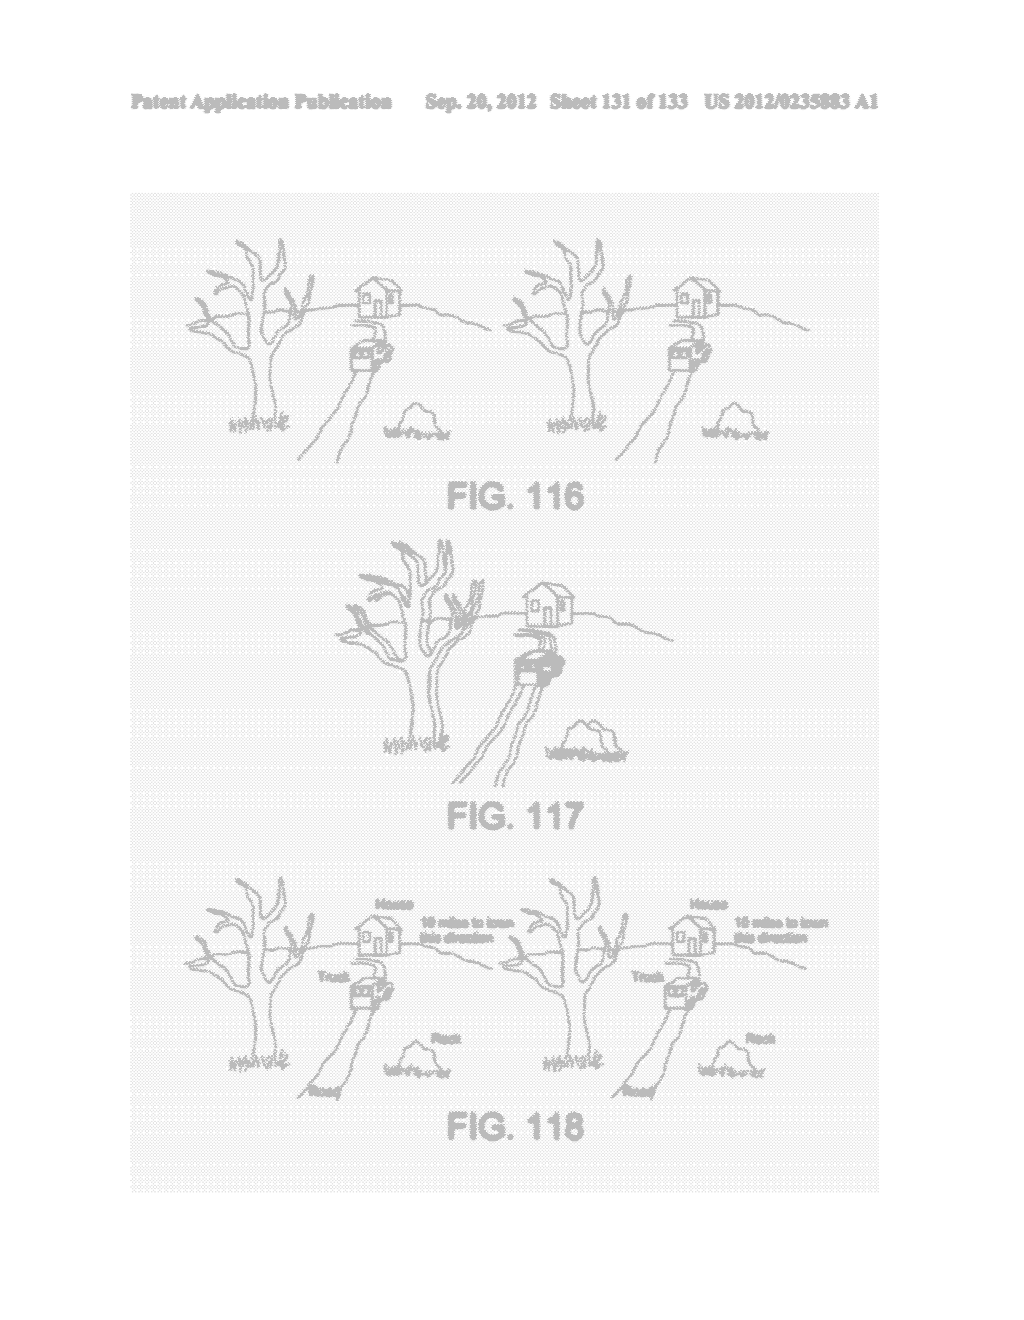 SEE-THROUGH NEAR-EYE DISPLAY GLASSES WITH A LIGHT TRANSMISSIVE WEDGE     SHAPED ILLUMINATION SYSTEM - diagram, schematic, and image 132